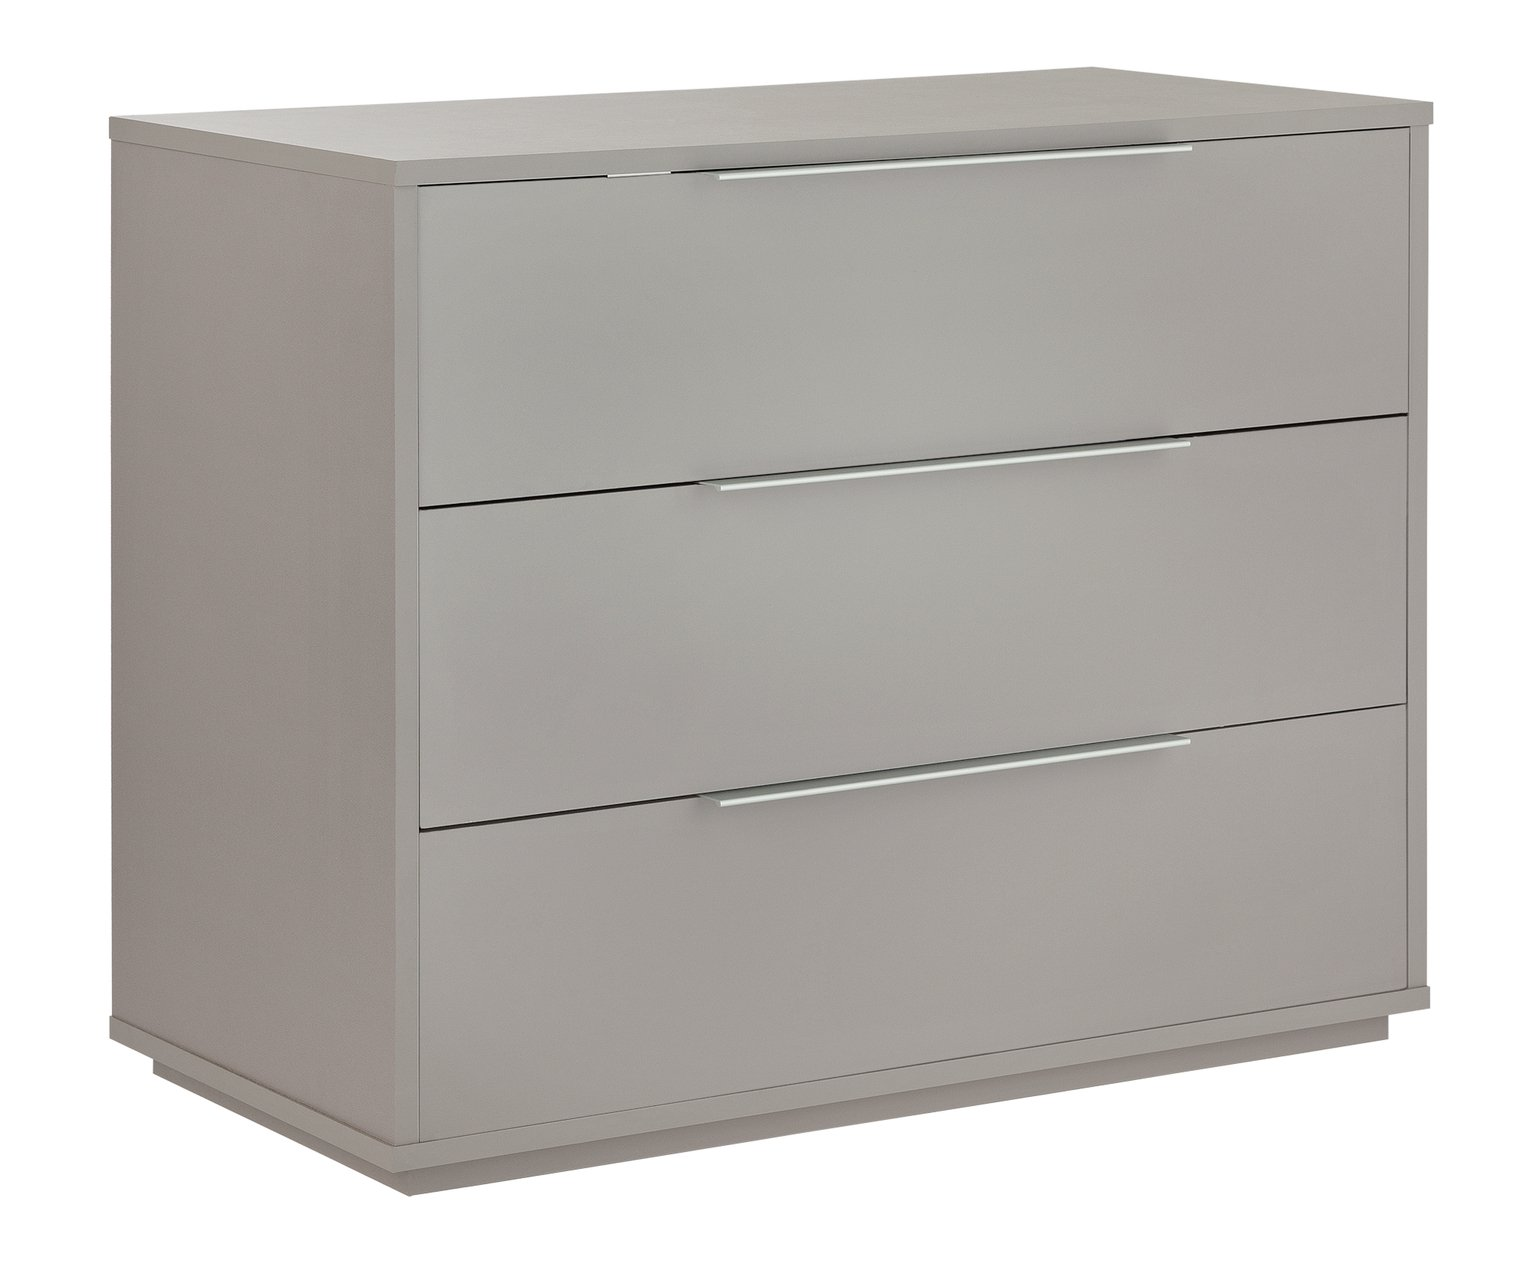 Argos Home Holsted Grey Gloss 3 Drawer Chest